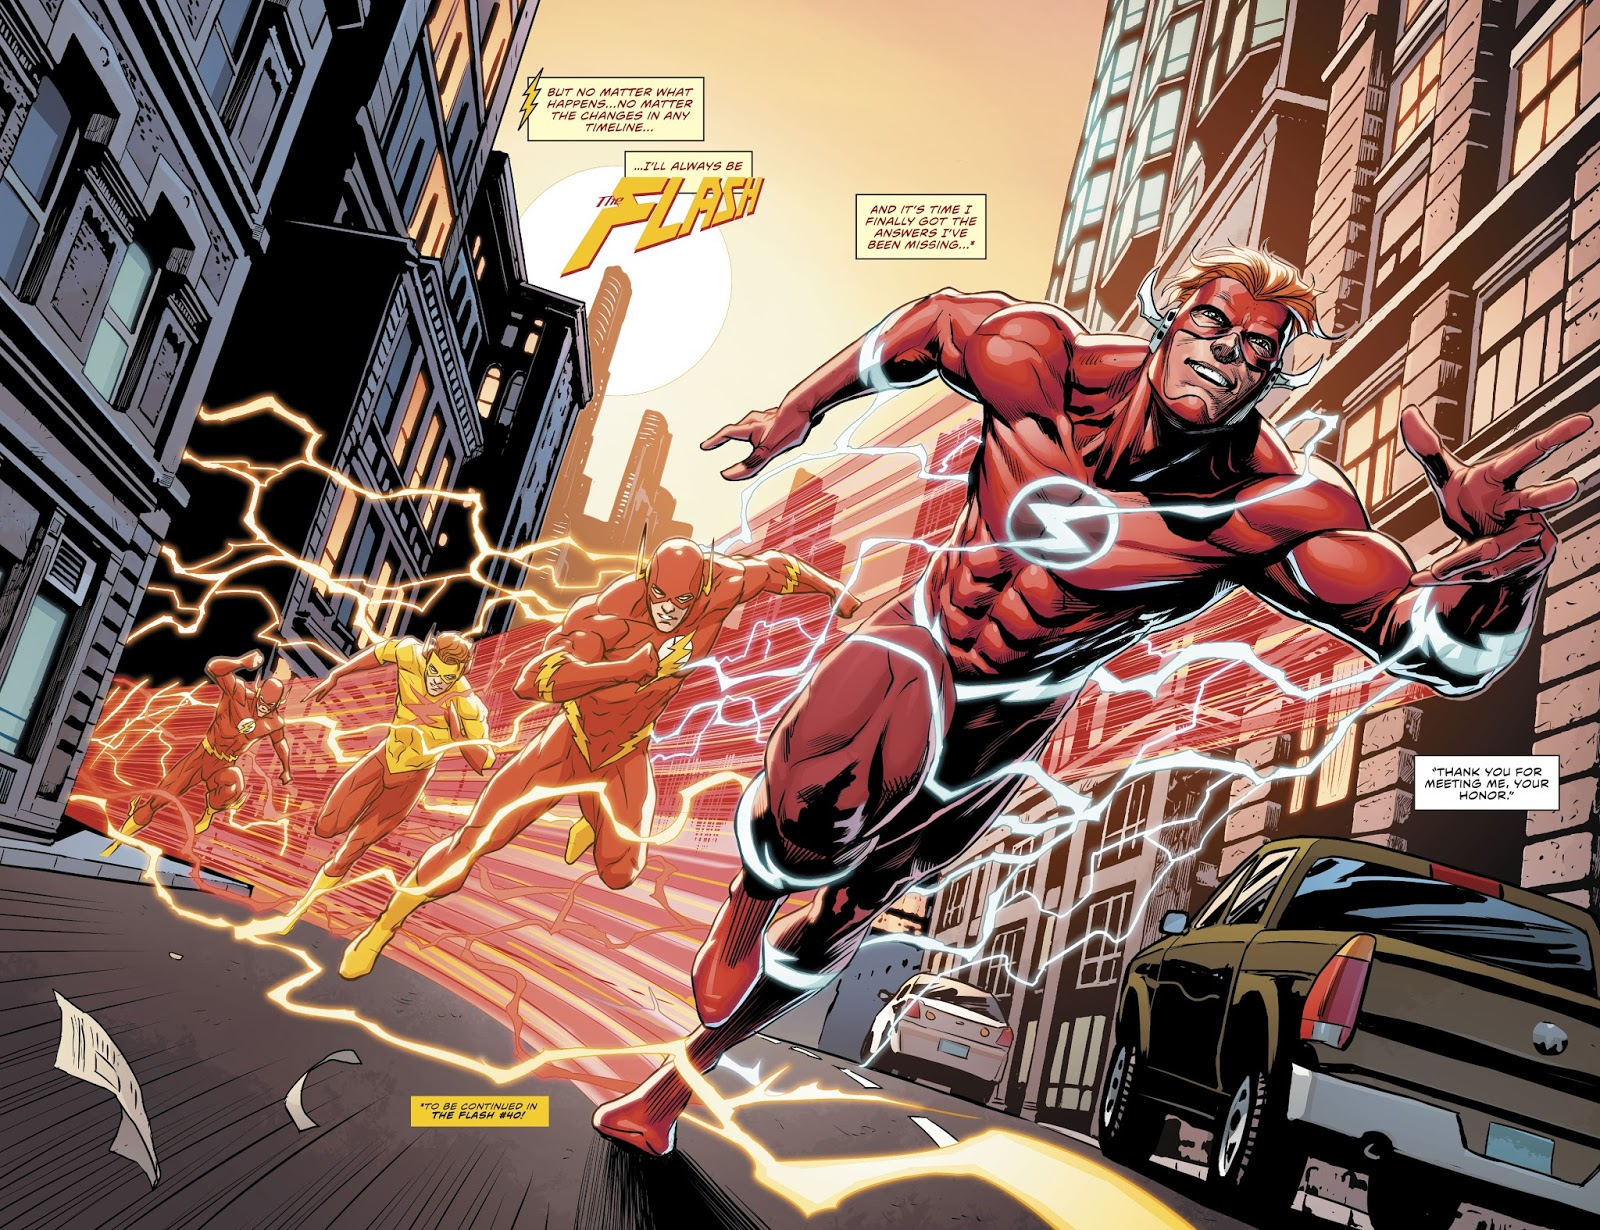 Wally West (The Flash Vol. 5 Annual #1)